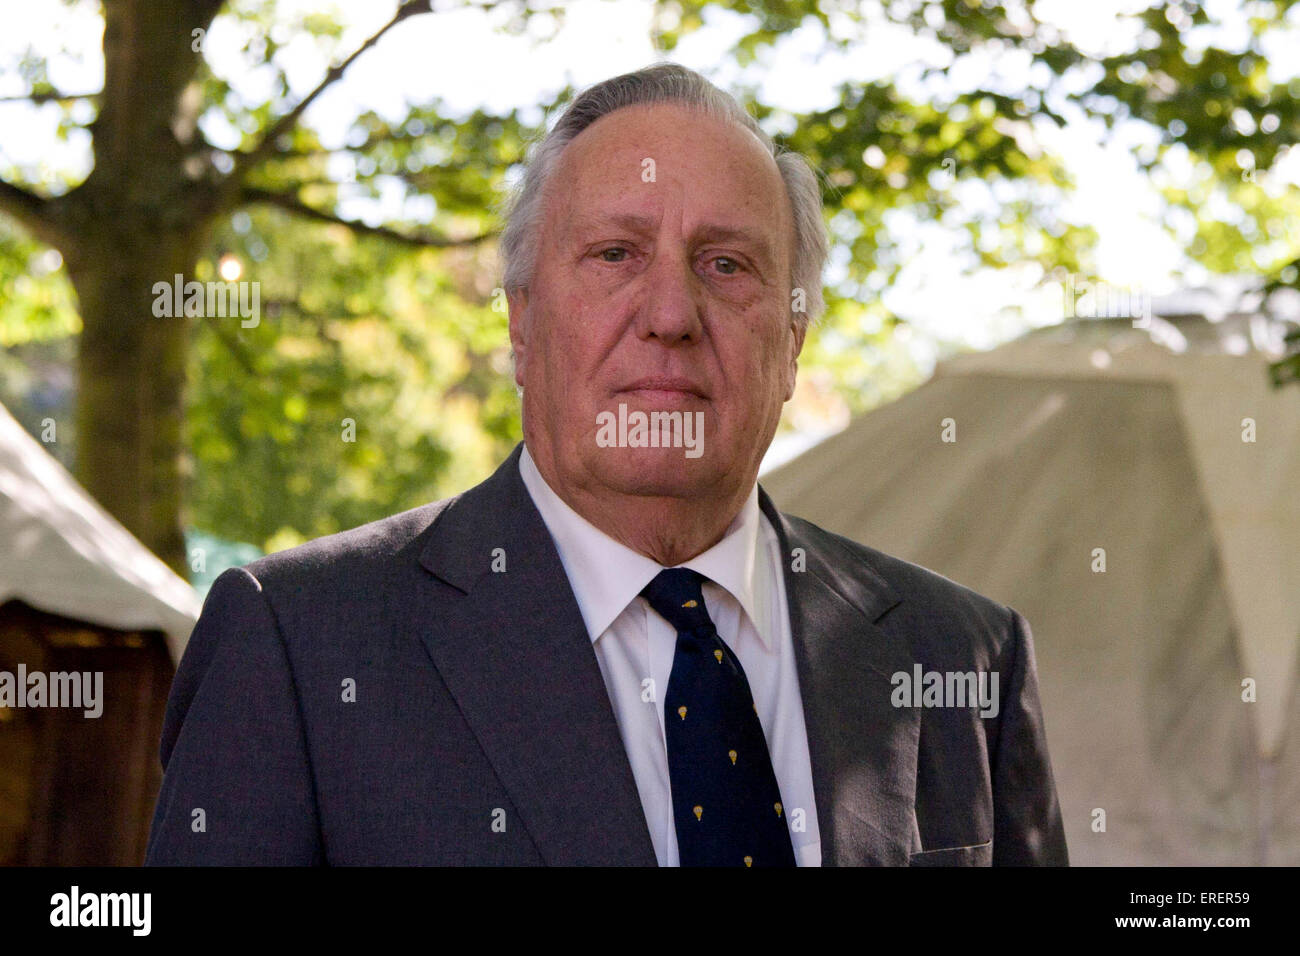 Frederick Forsyth, CBE, English author and occasional political commentator at the Edinburgh book festival event - Stock Image